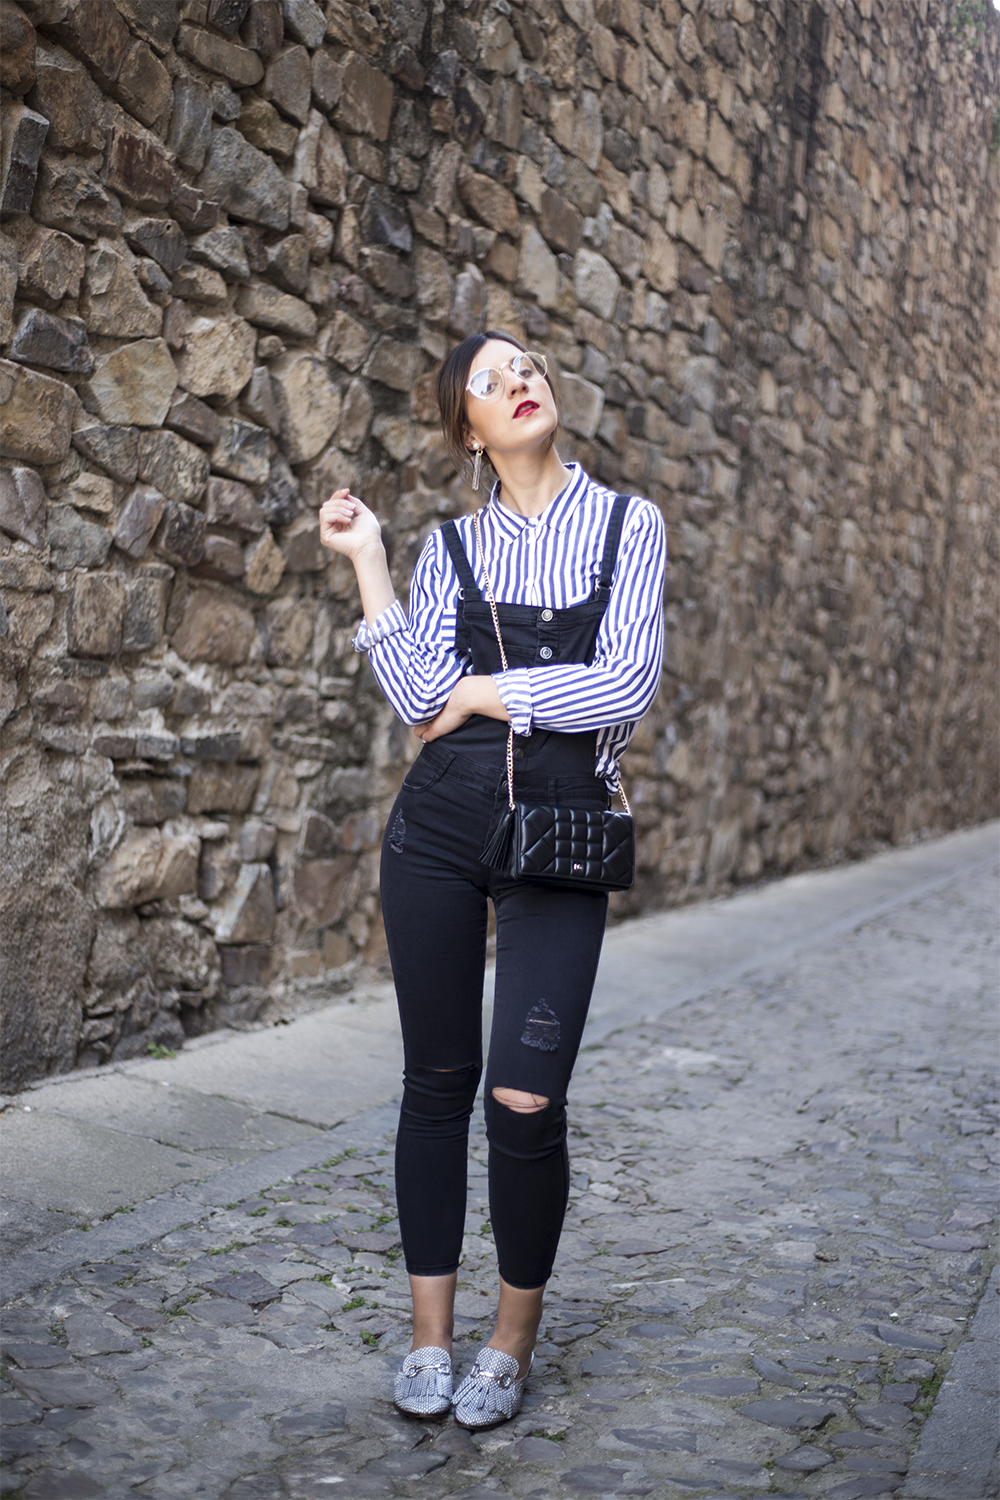 http://looking4theblacksheep.blogspot.com.es/2017/03/black-overall-stripes.html